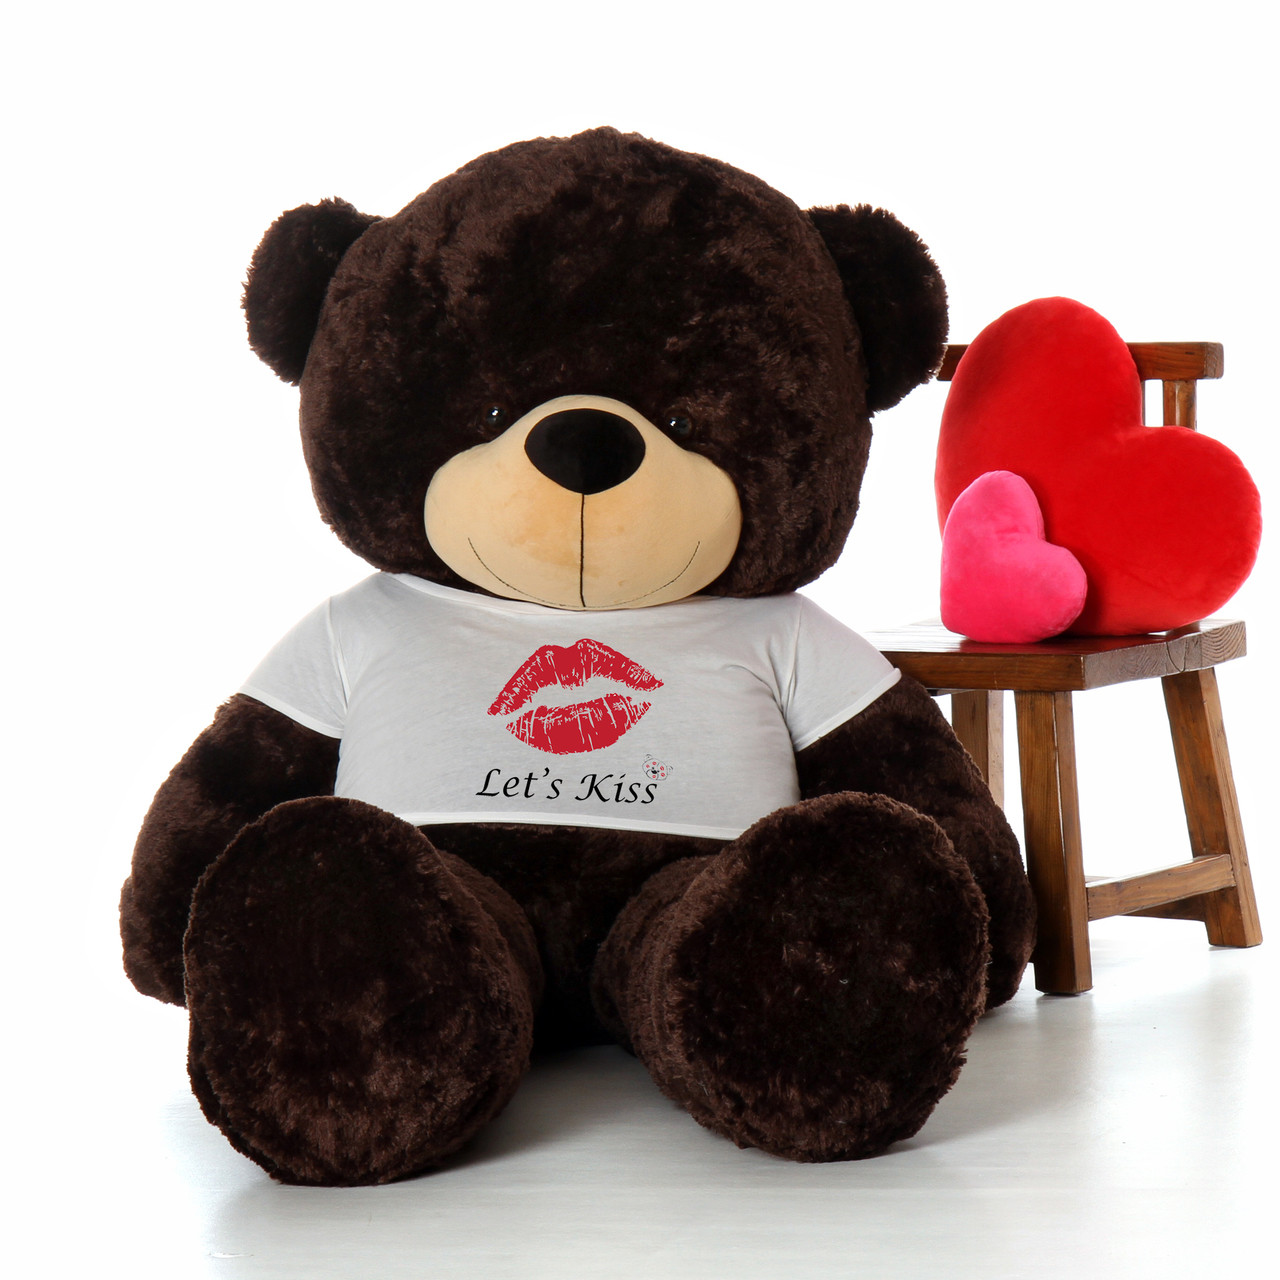 72in Brownie Cuddles Giant Teddy Bear wearing a Let's Kiss T-Shirt for Valentine's Day